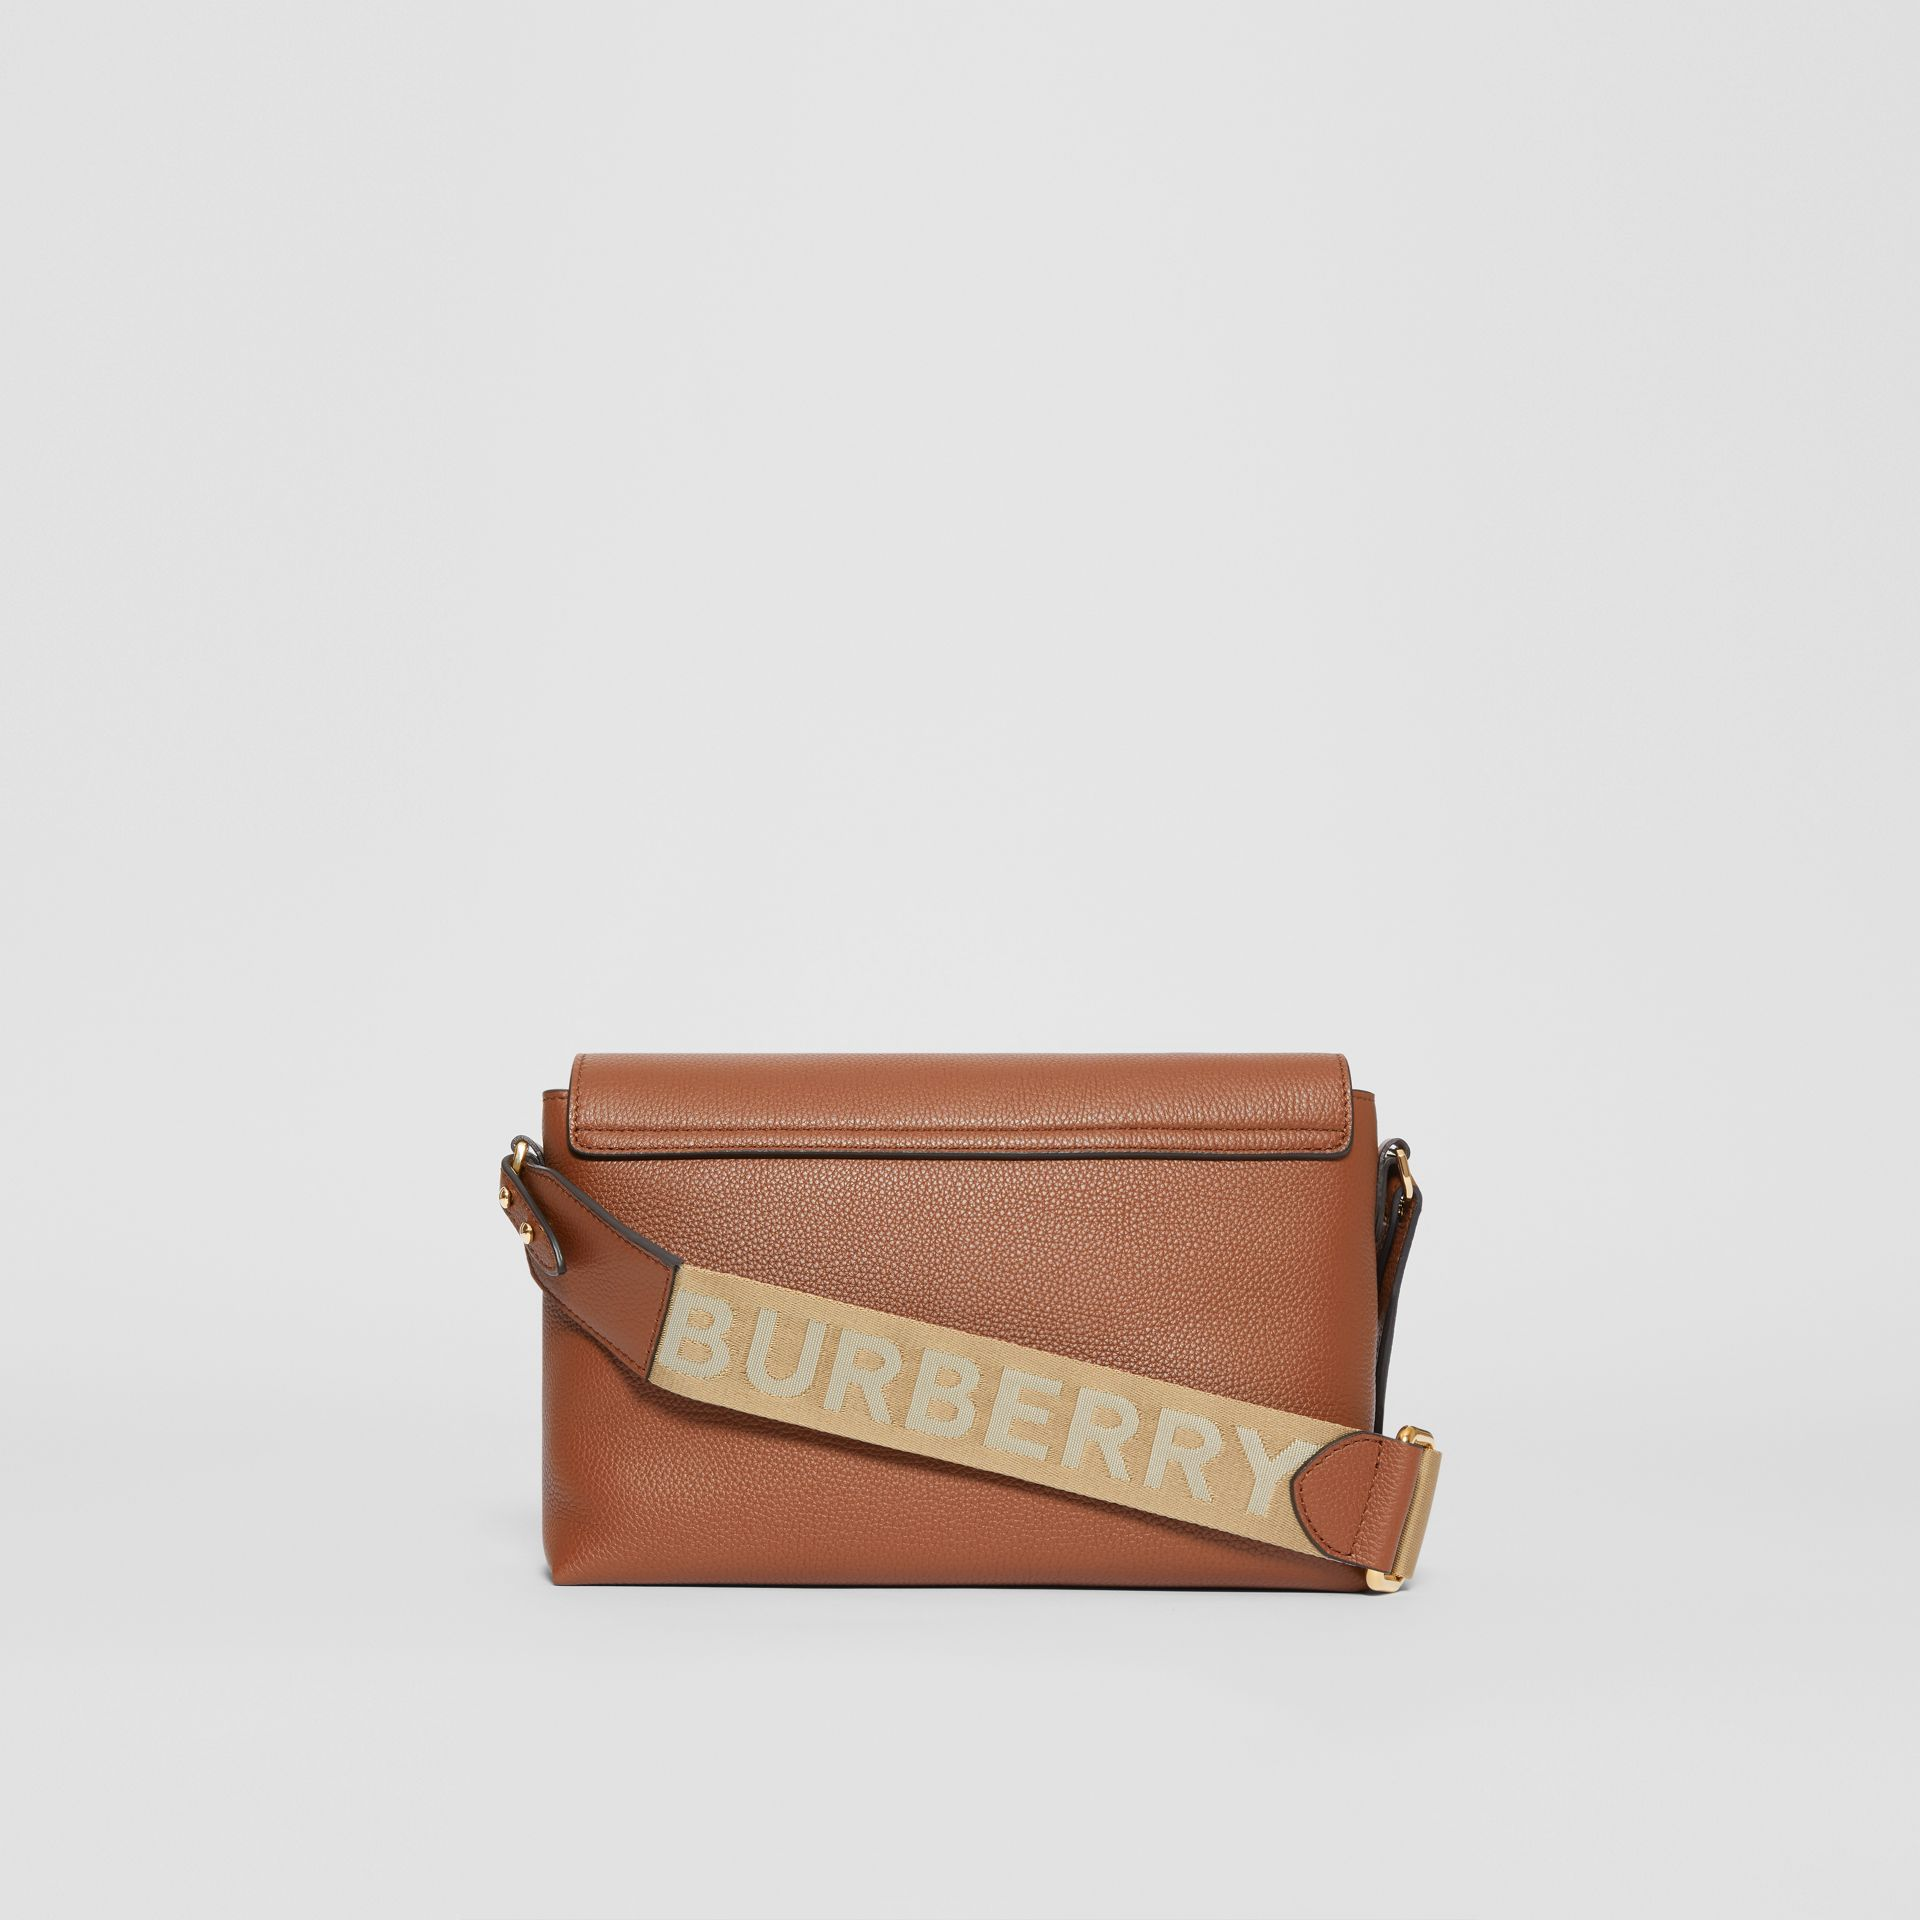 Leather and Vintage Check Note Crossbody Bag in Tan - Women | Burberry - gallery image 7